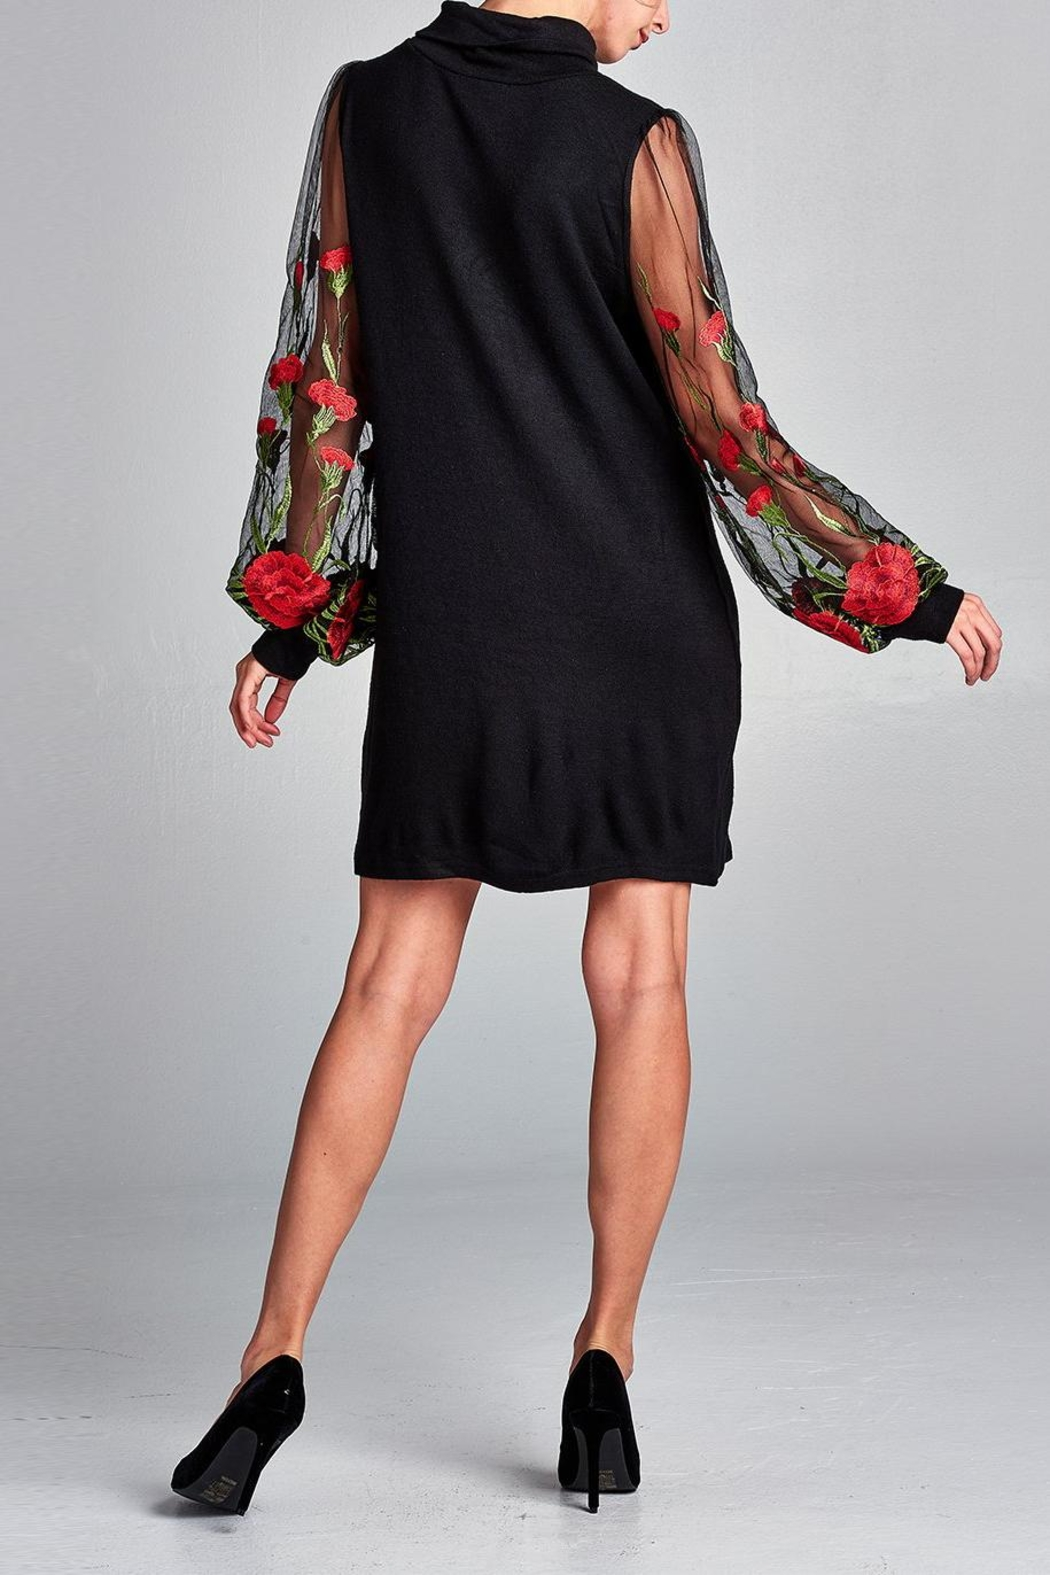 Love Kuza Embroidered Floral Dress - Side Cropped Image